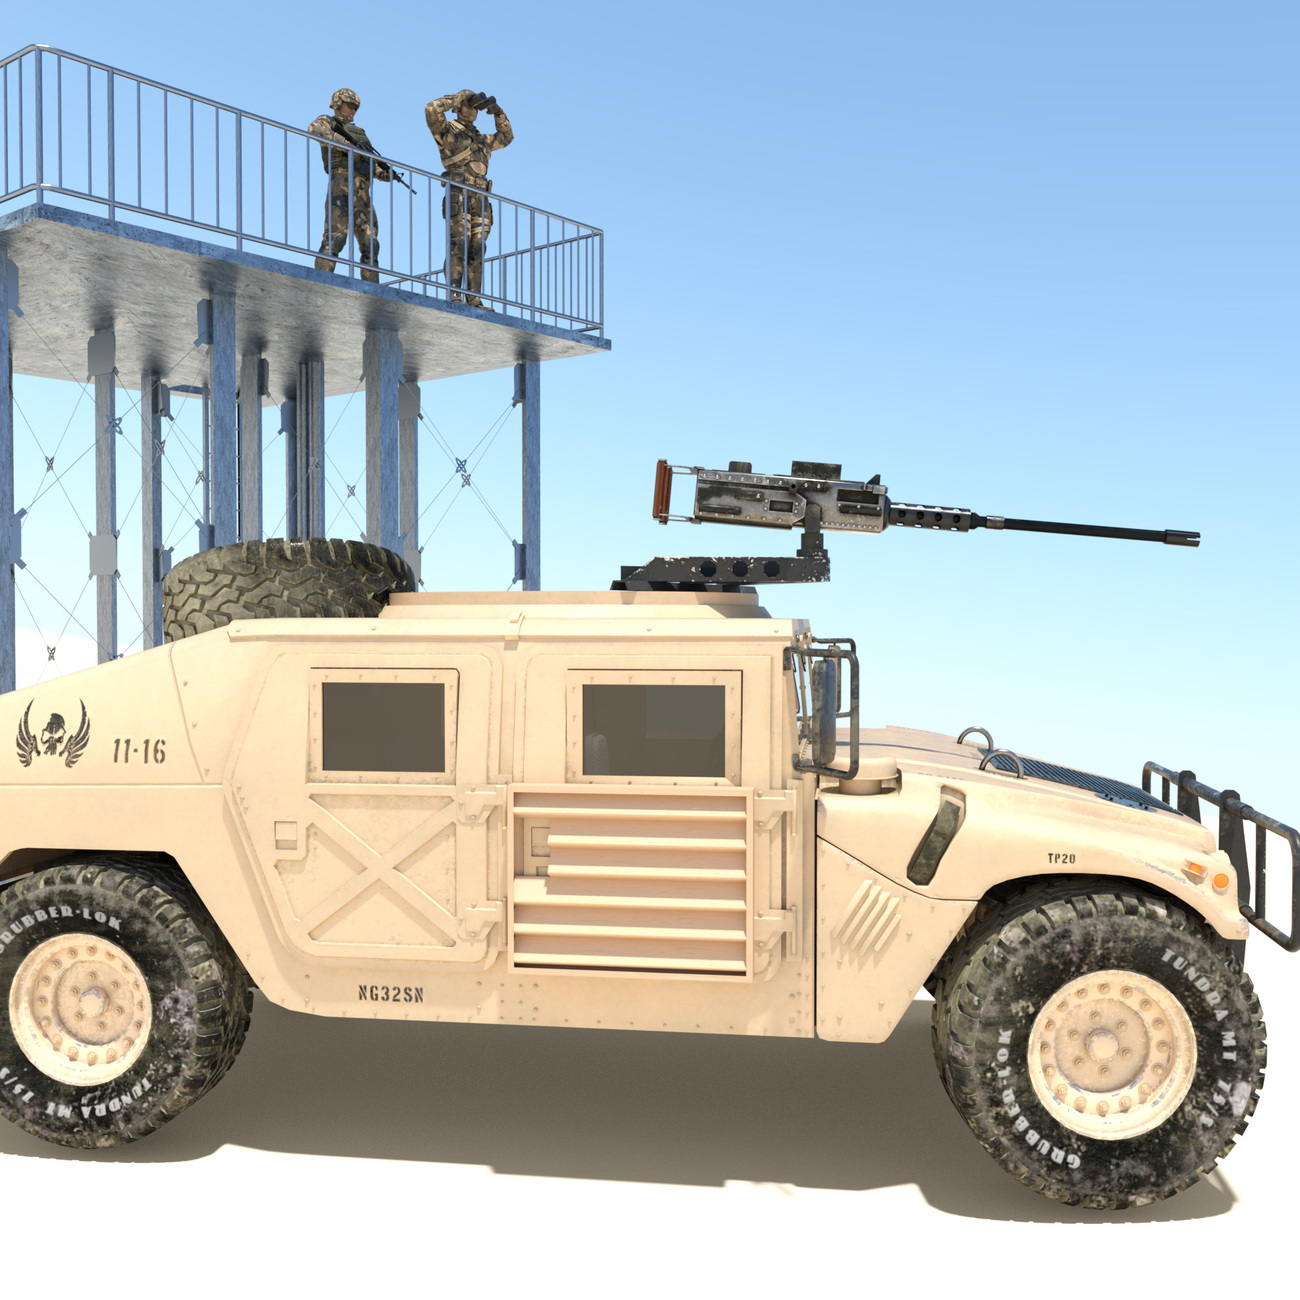 HMMWV and watchtower by x7